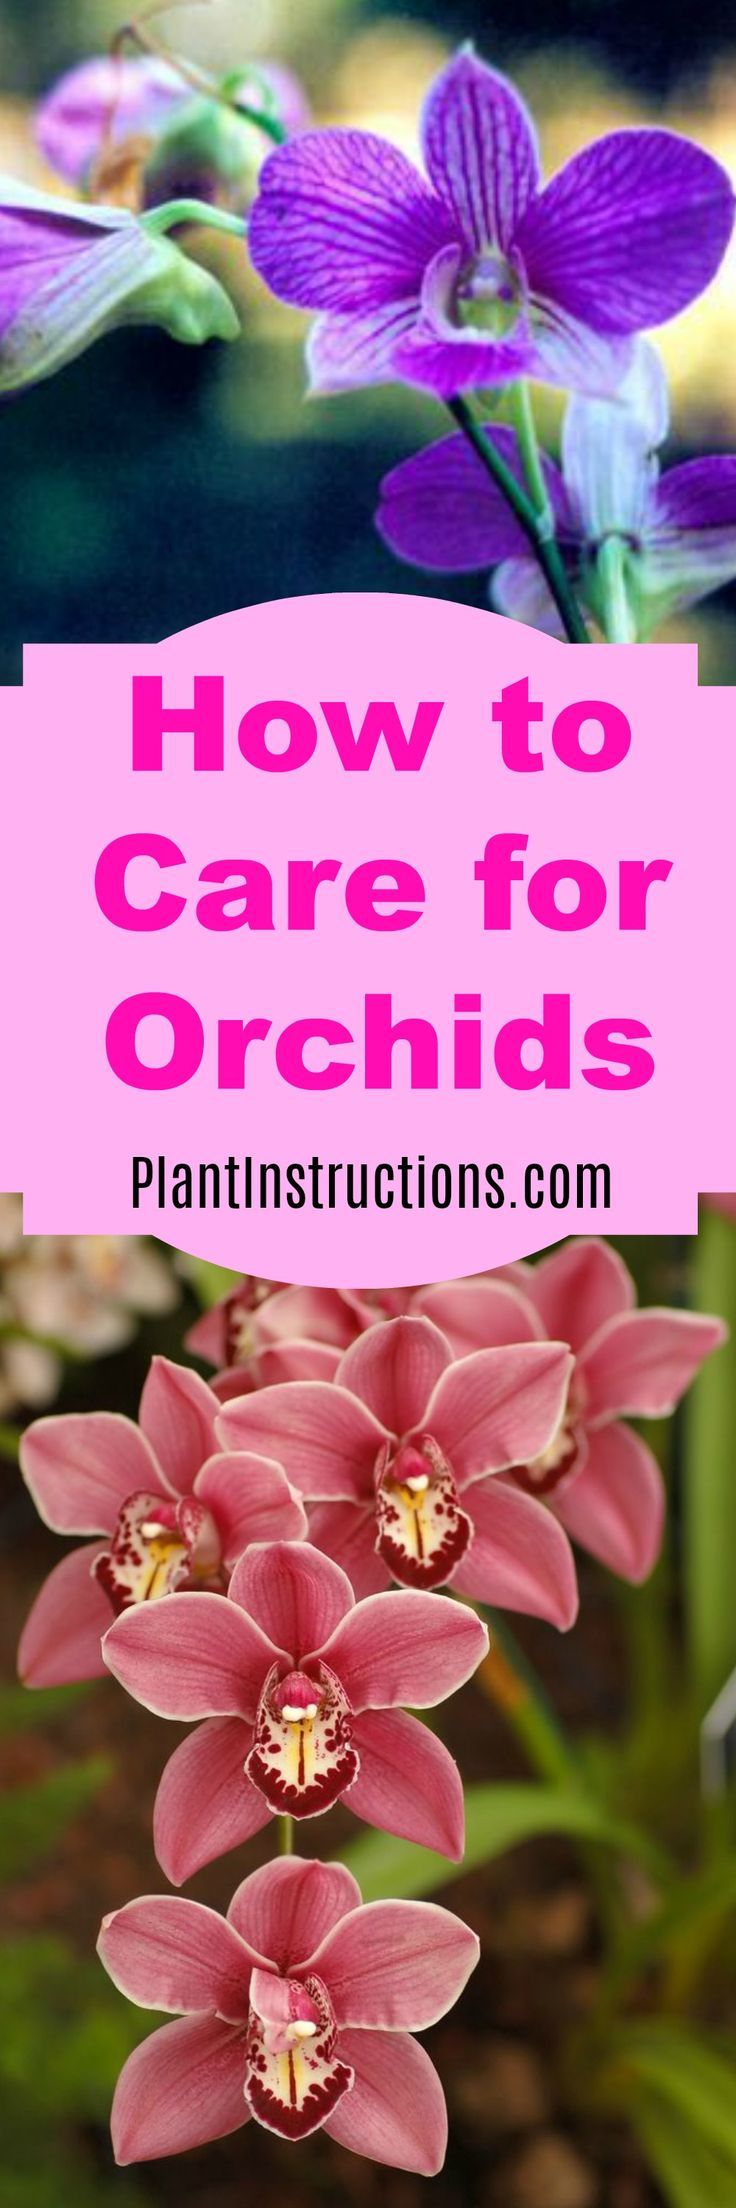 How to Care for Orchids | Plant Instructions